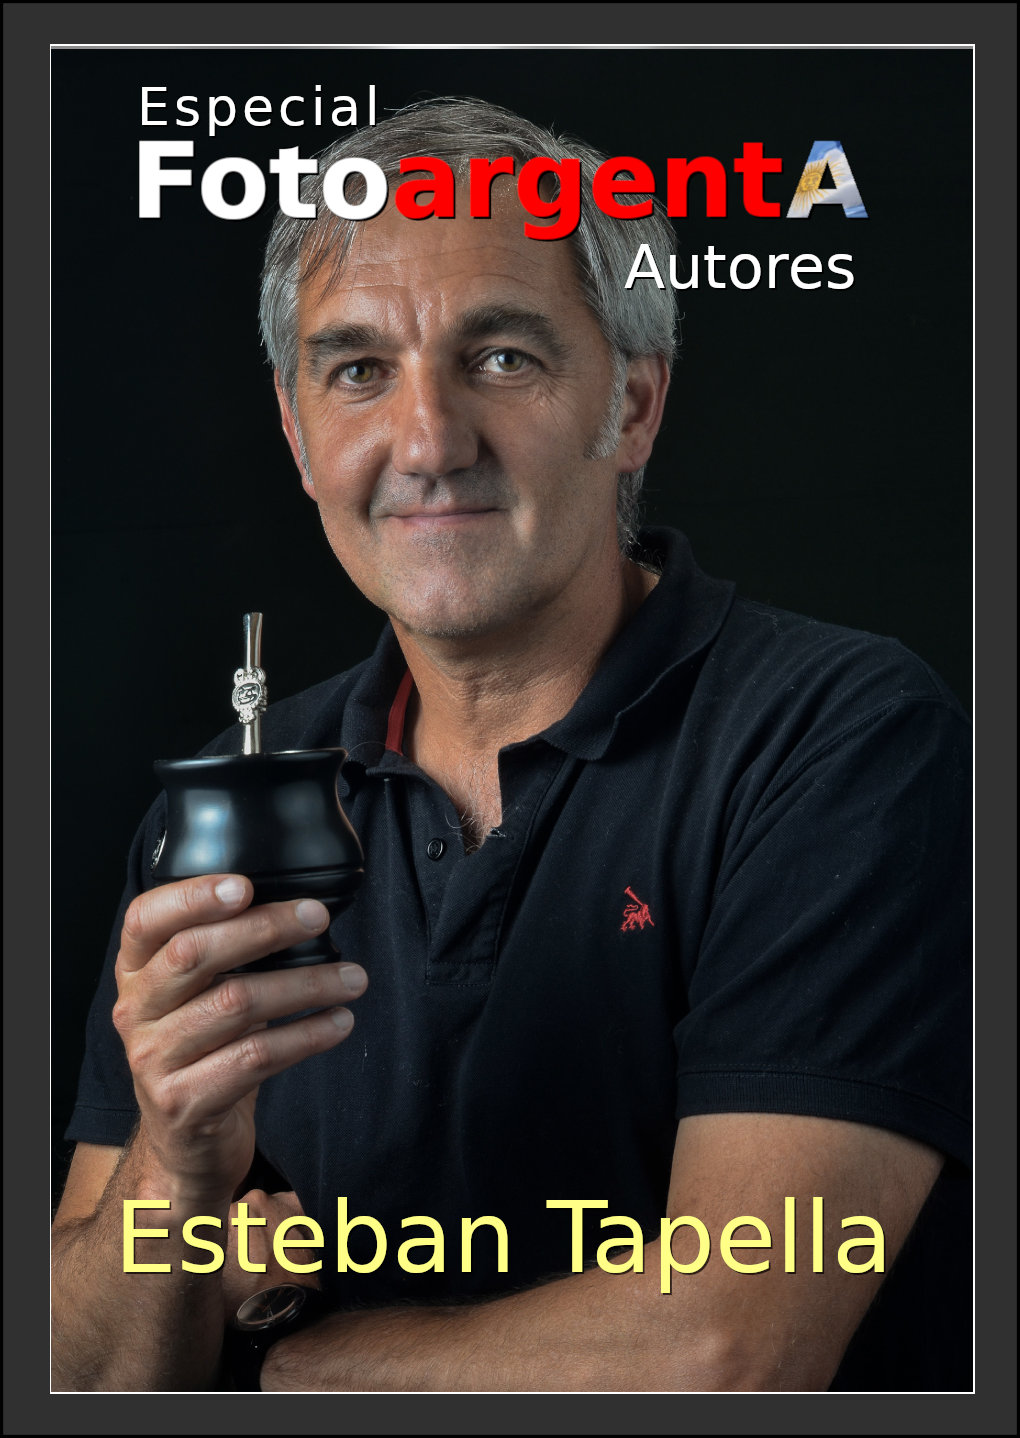 Tapa Revista de Esteban Tapella